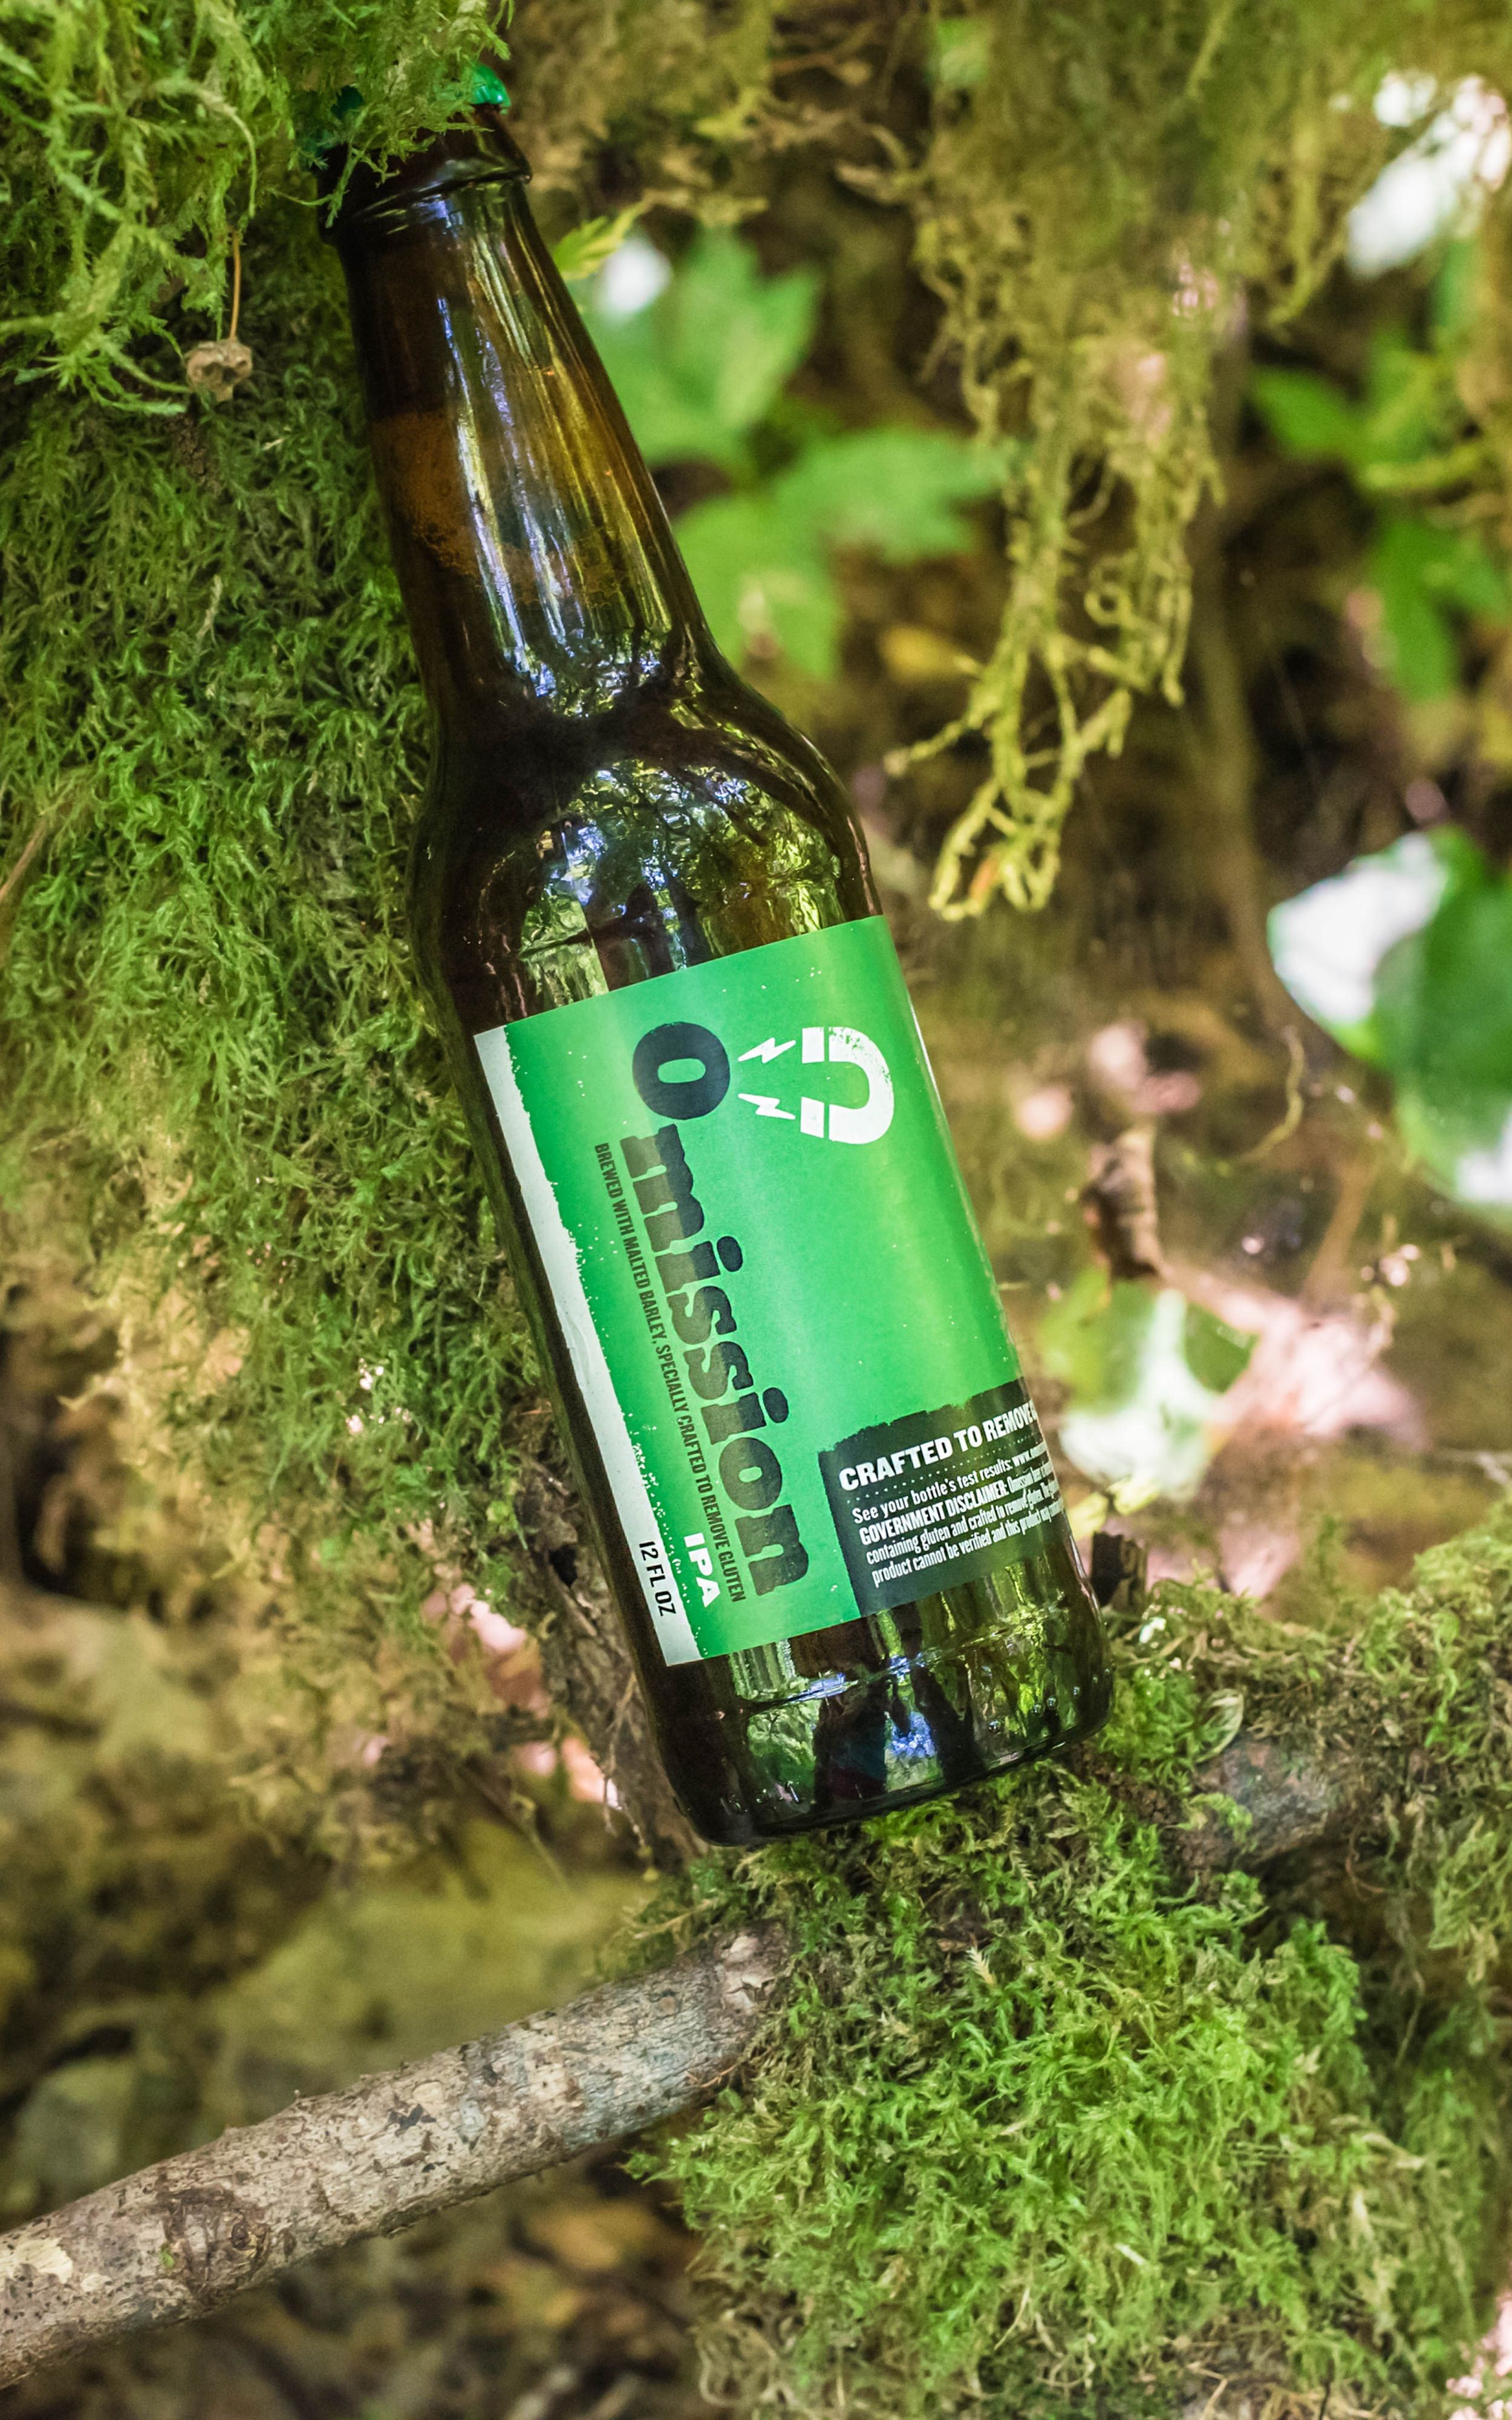 Ready to go green? Drink Omission IPA.